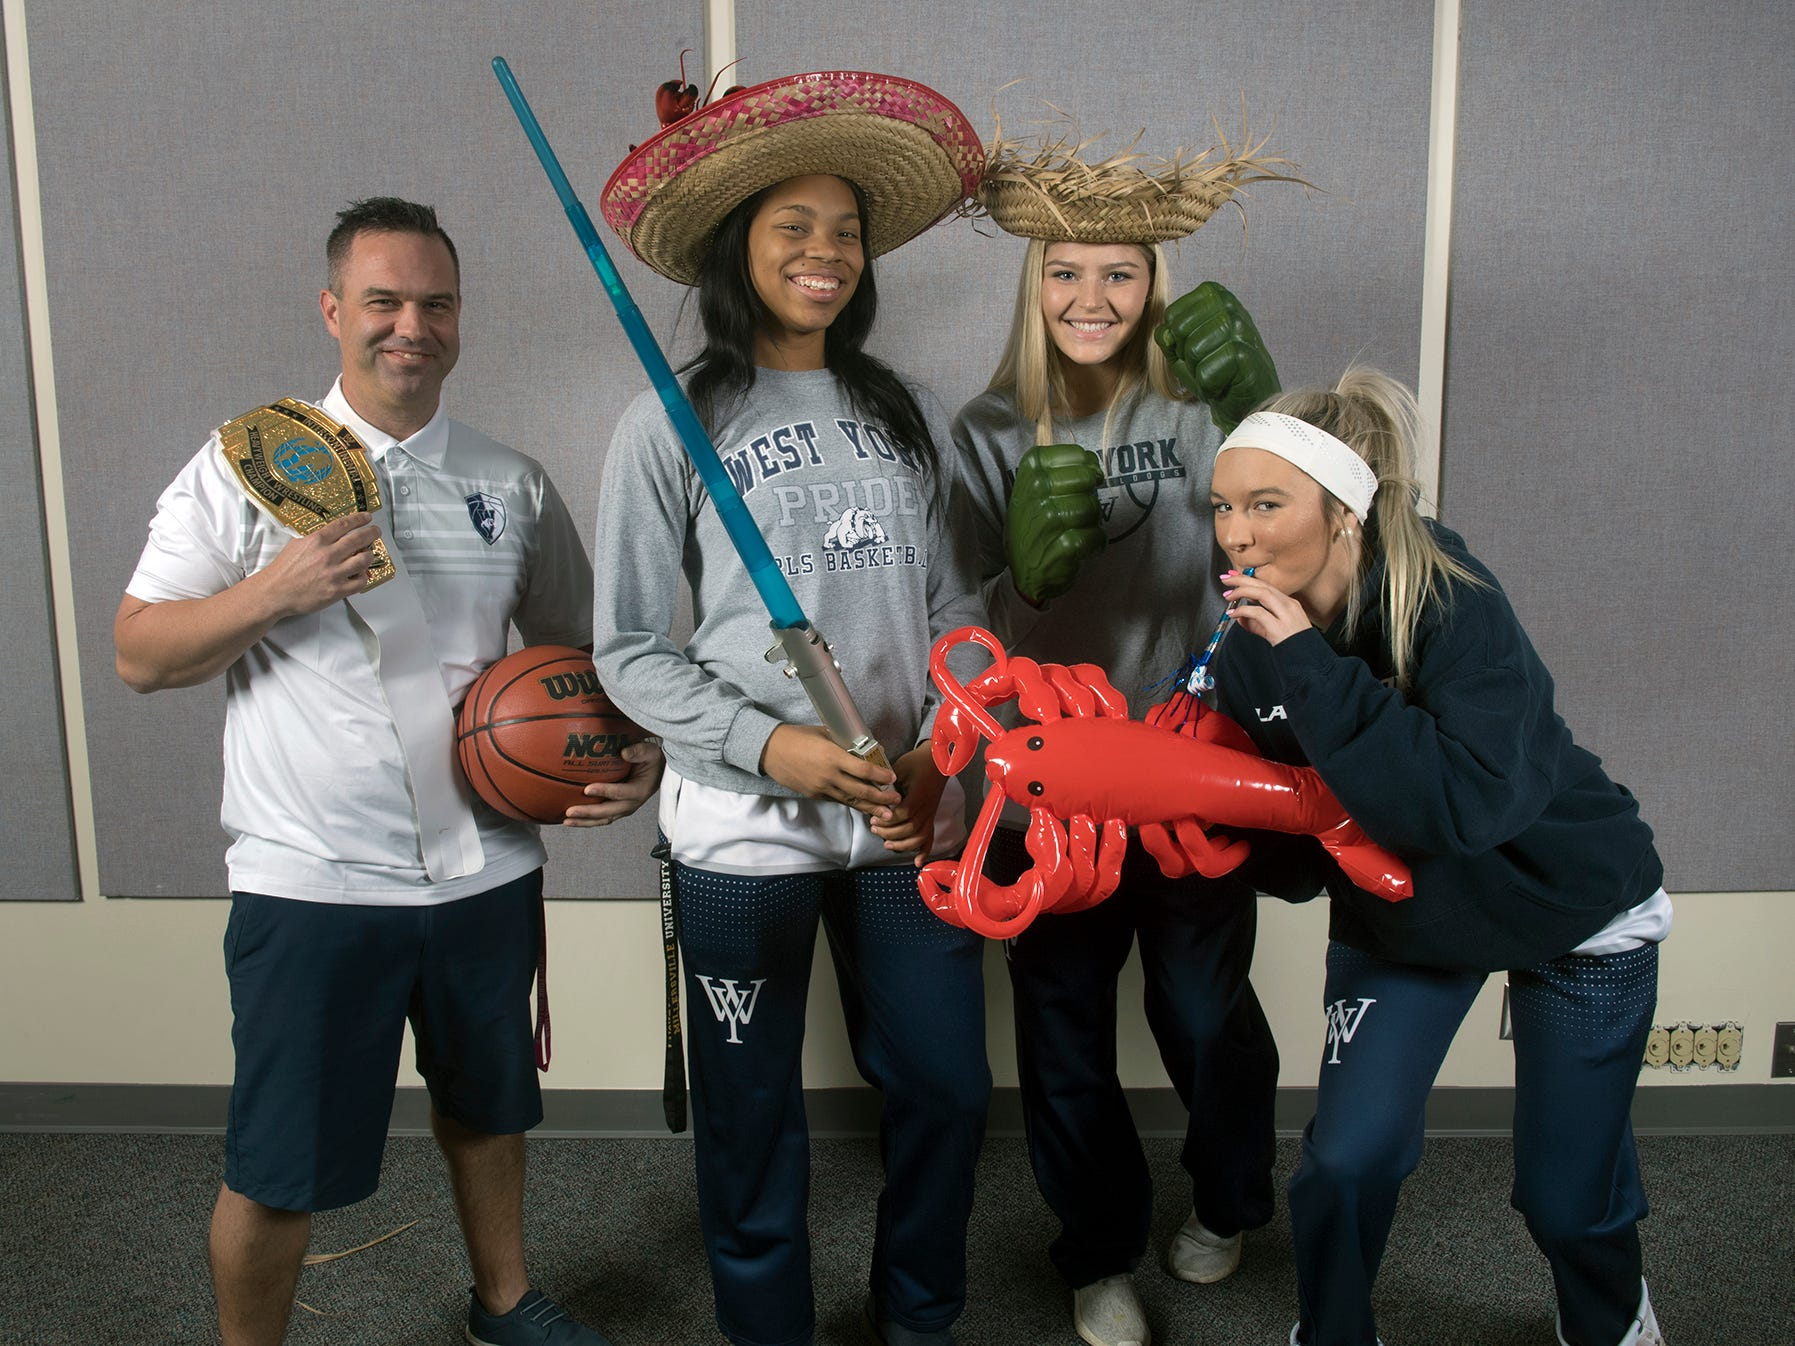 From the left, coach James Kunkle, Alayna Harris, Alyssa Zorbaugh and Makenna Hoffman, of the West York girls basketball team, pose during the 2018-19 GameTimePa YAIAA Winter Media Day Sunday November 11, 2018.